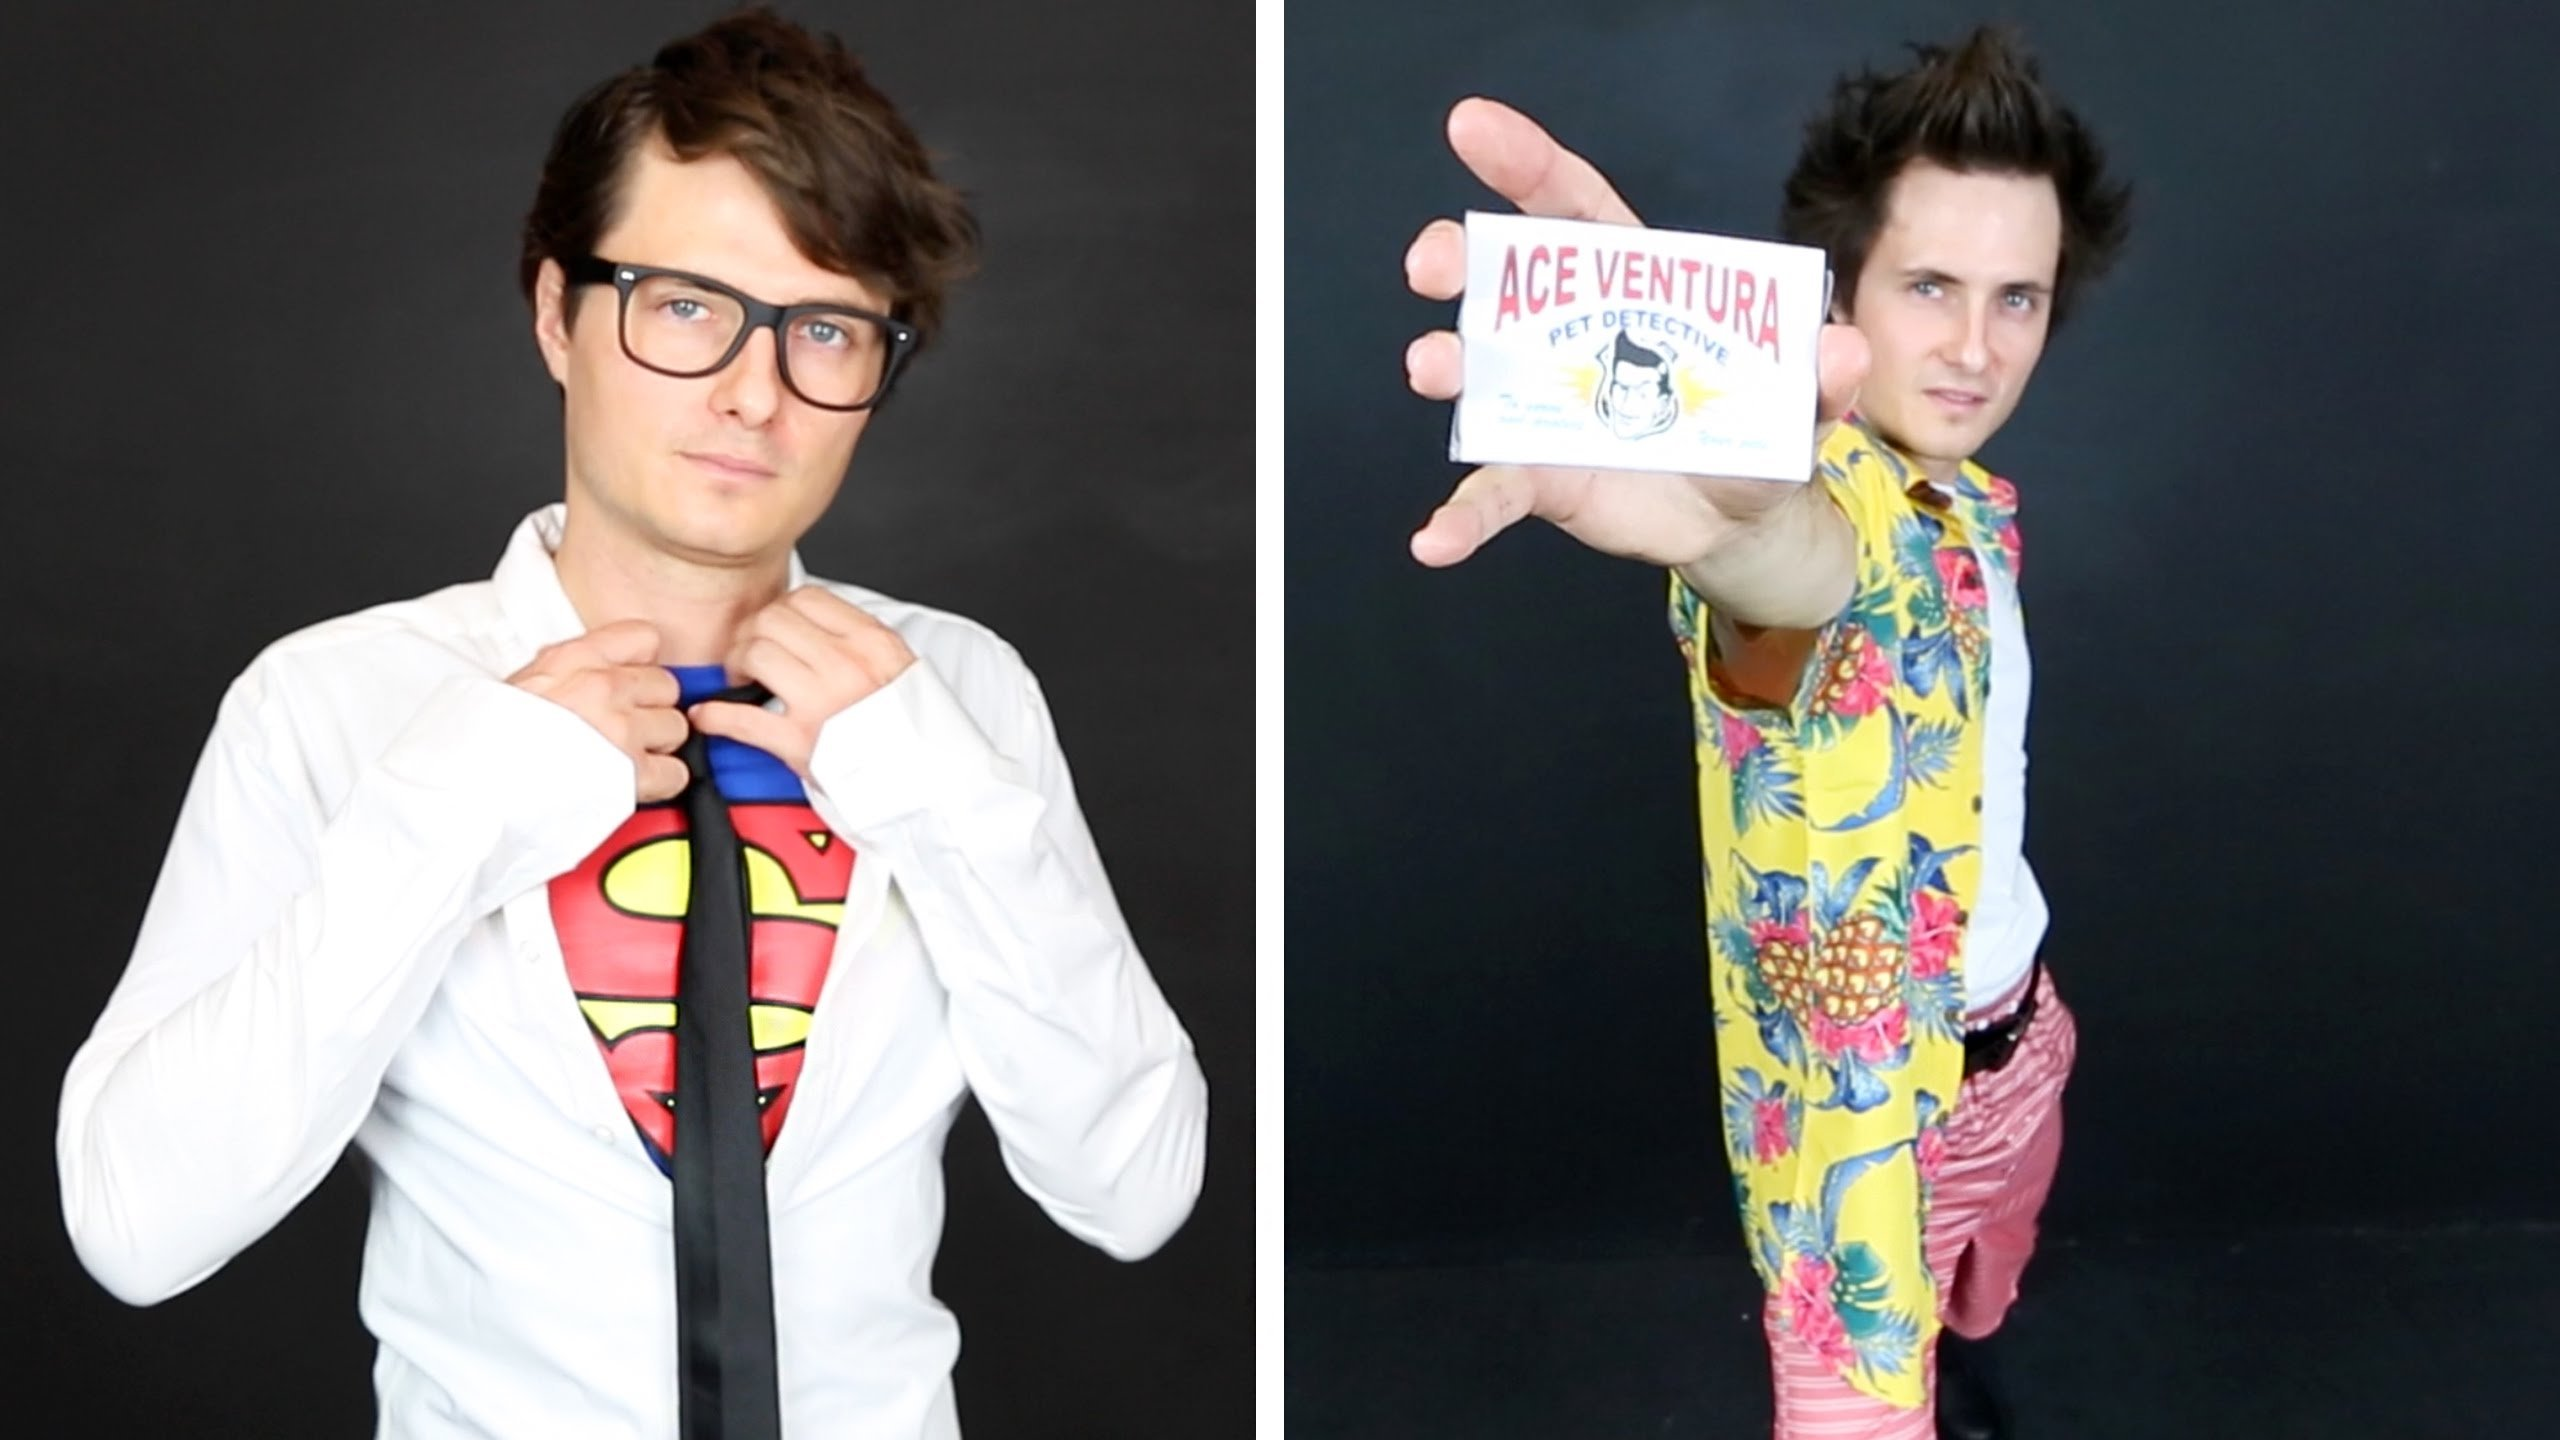 10 Most Recommended Awesome Costume Ideas For Men last minute easy halloween costumes for guys youtube 6 2021